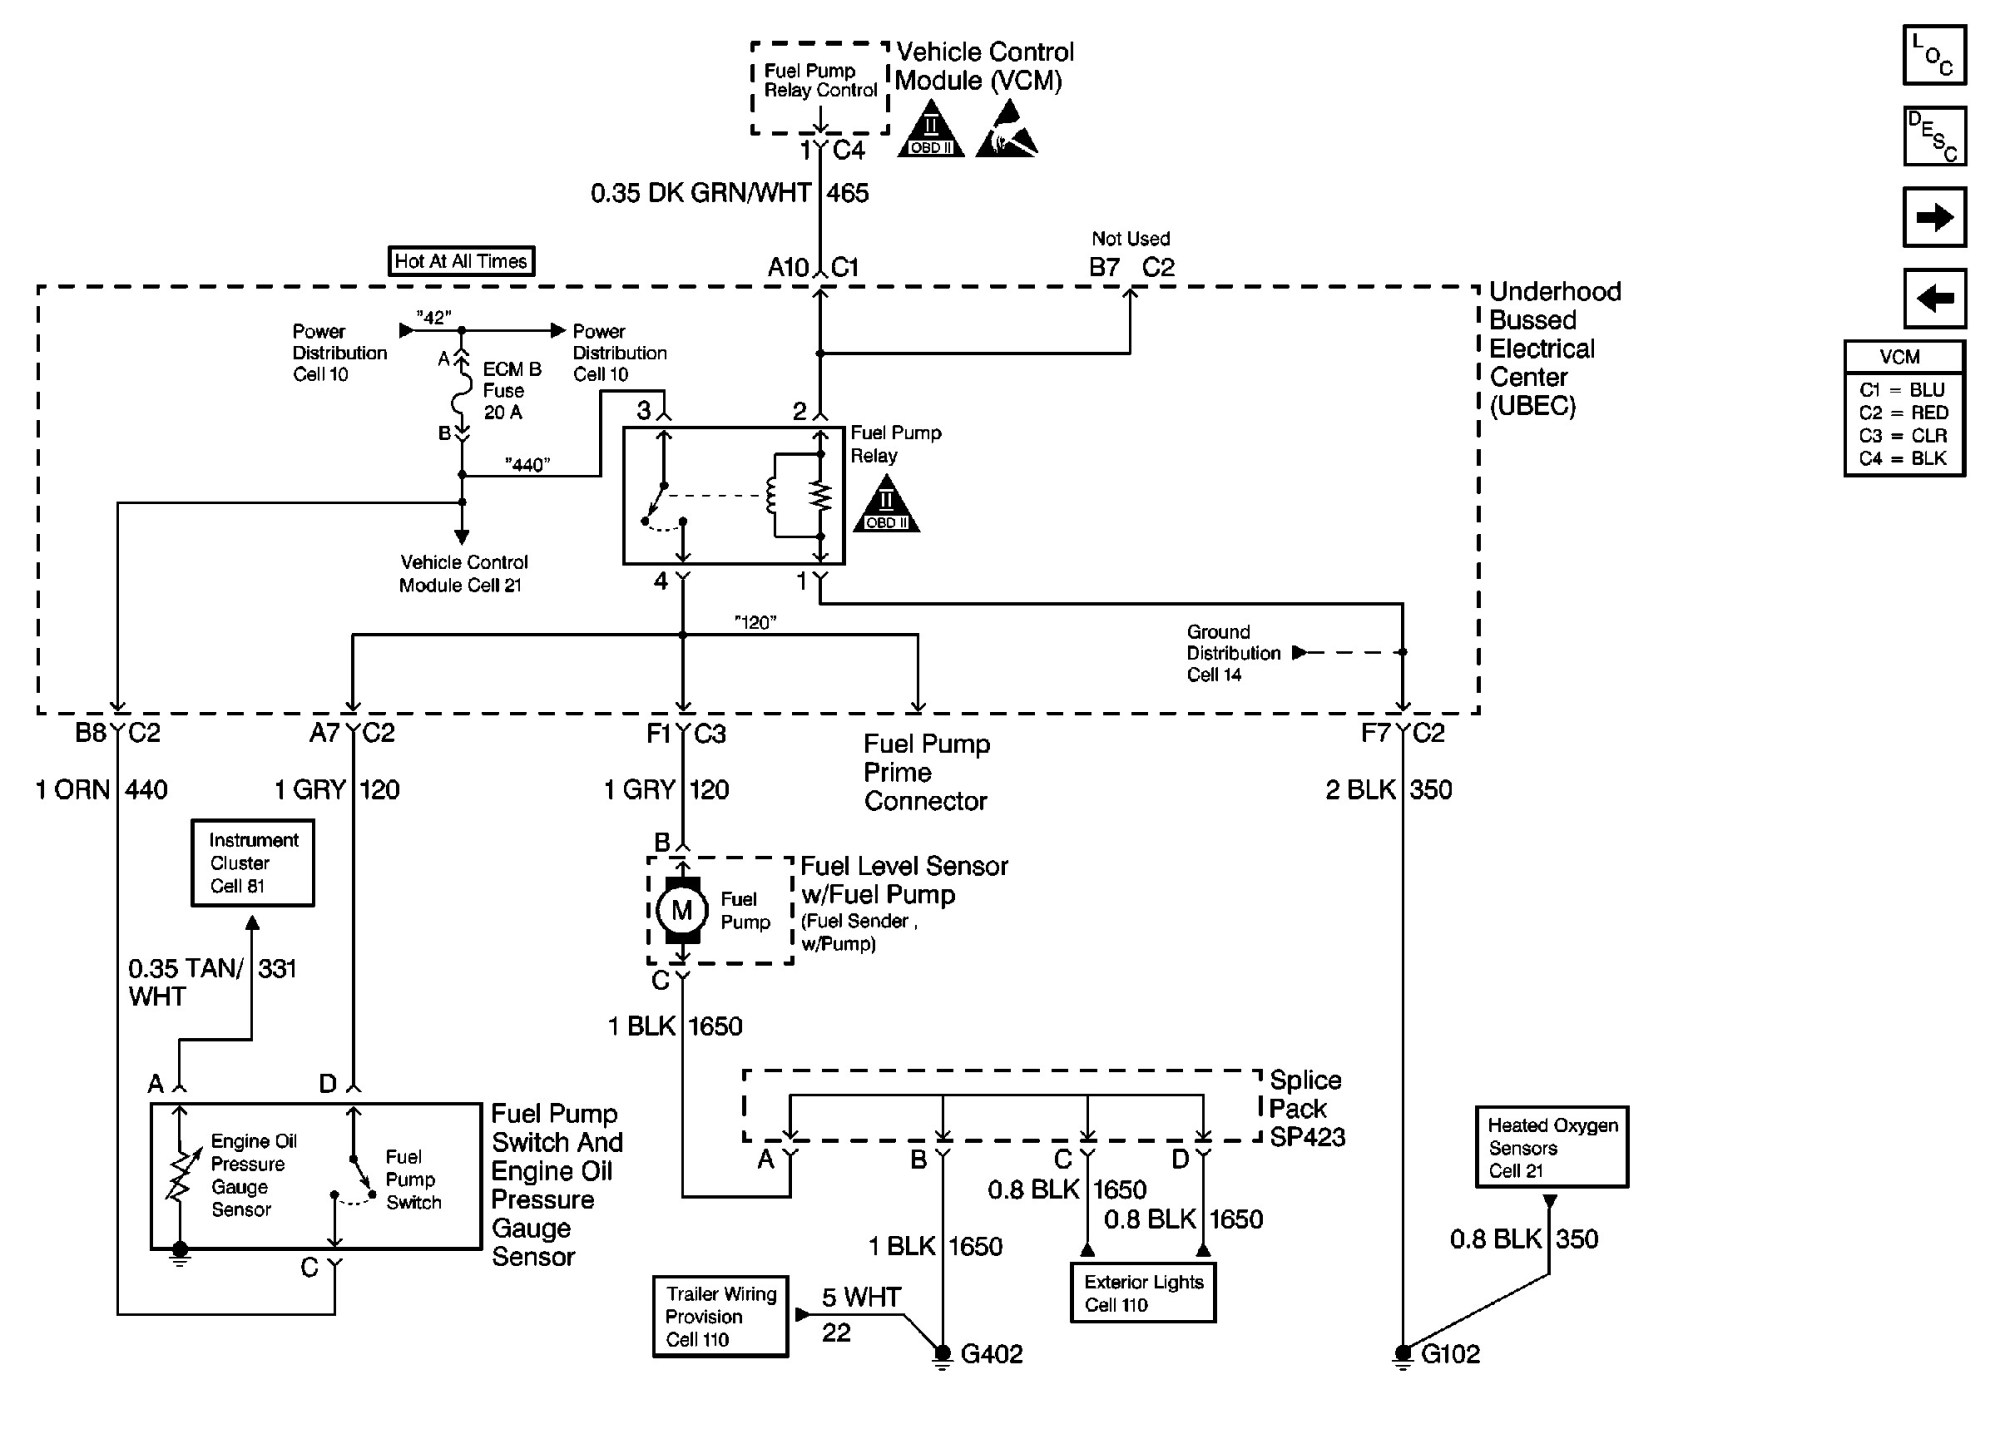 hight resolution of idec relay wiring diagram free picture schematic wiring diagram latching relay wiring diagram idec relay wiring diagram free picture schematic